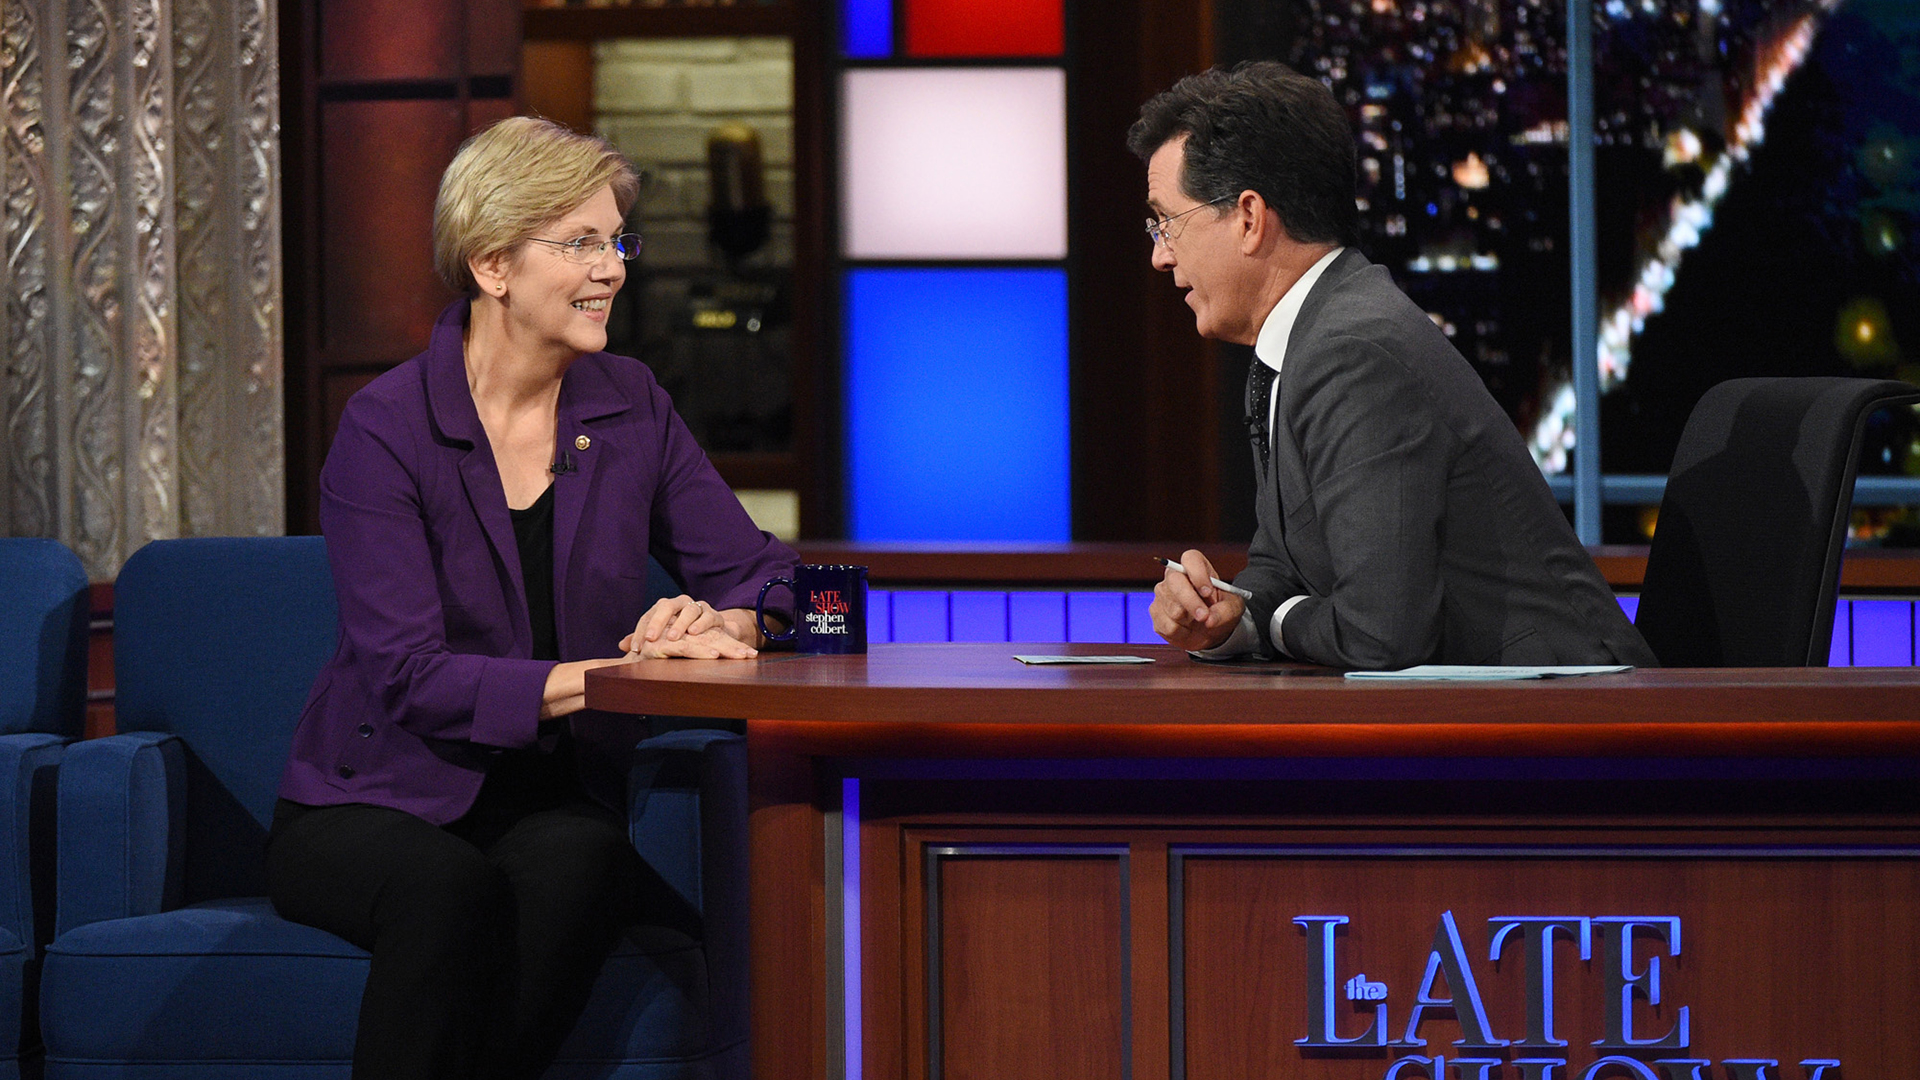 Elizabeth Warren and Stephen Colbert